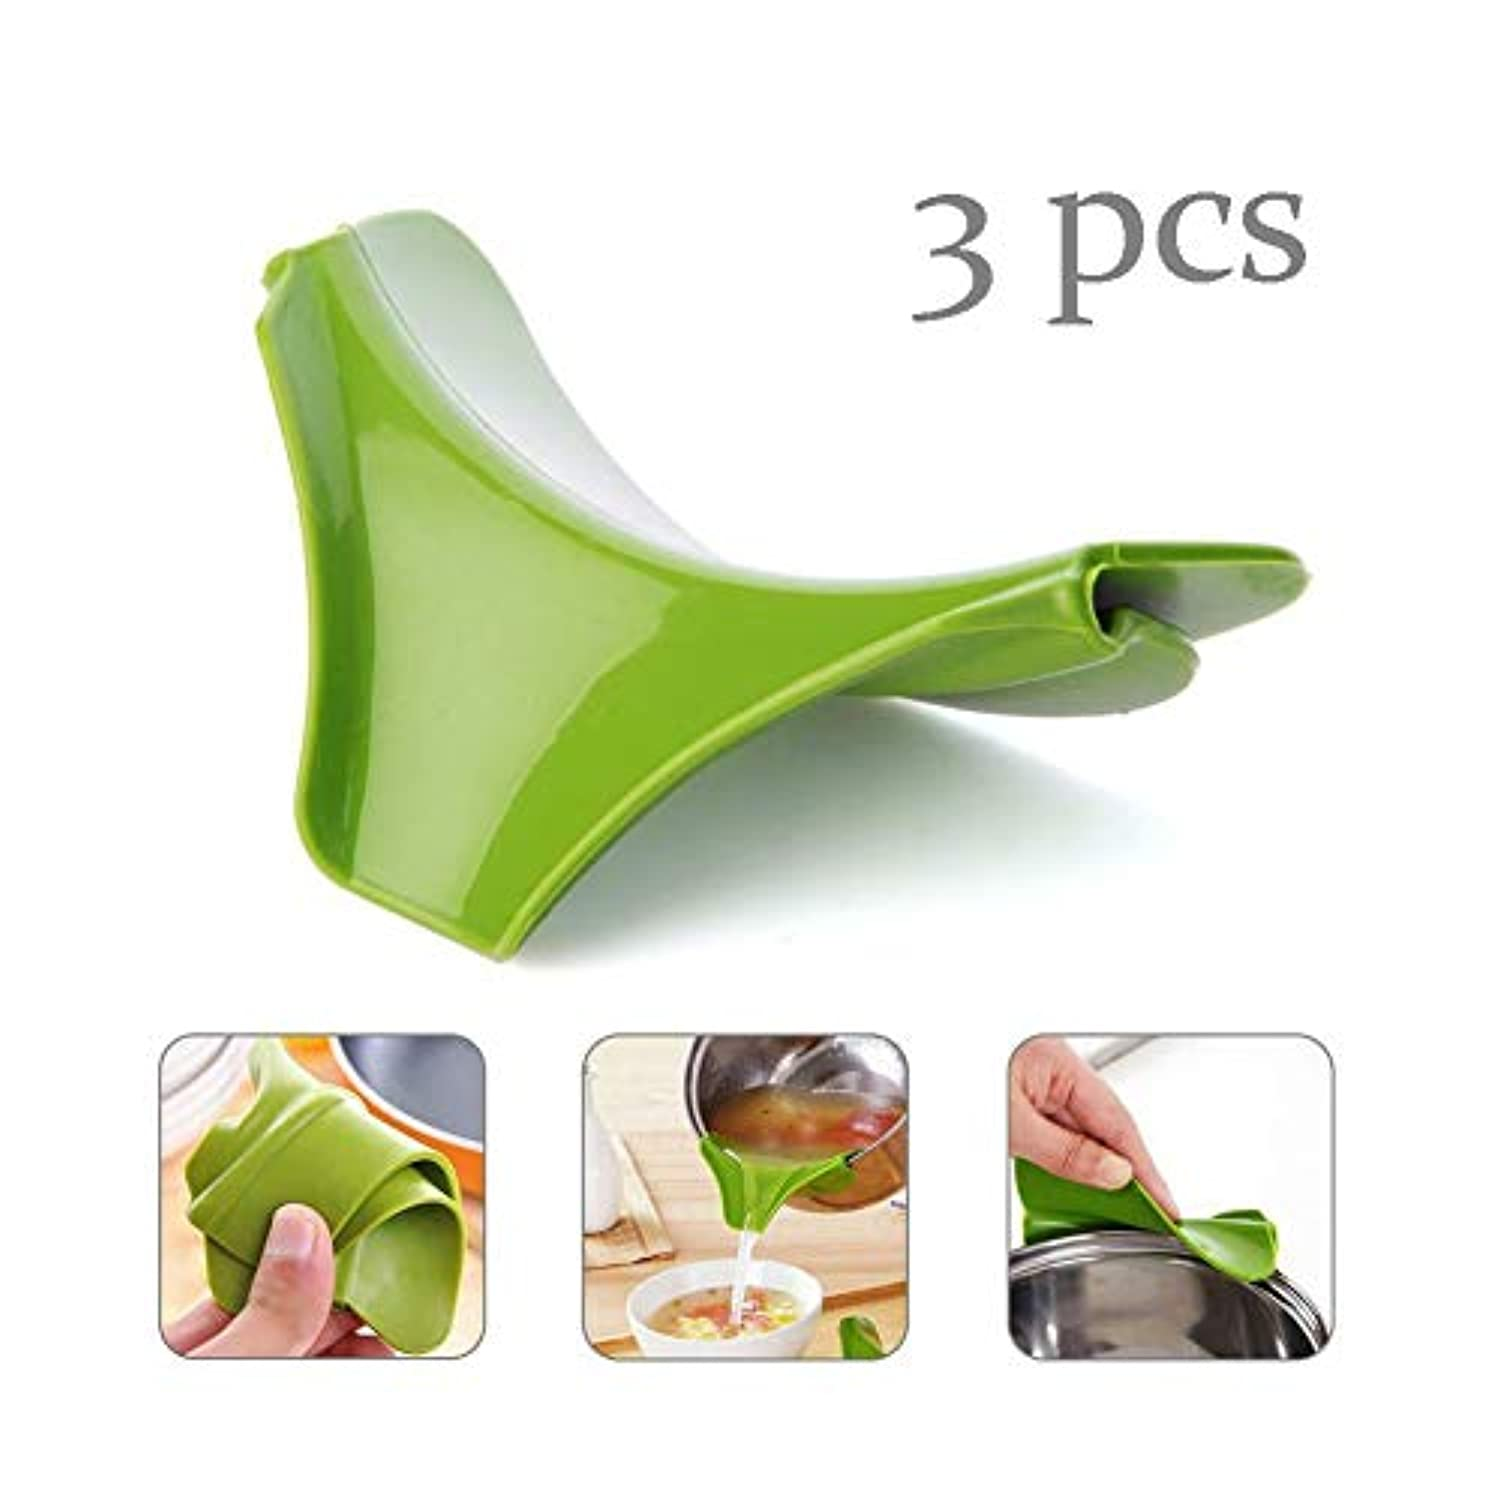 3 pcs Silicone Kitchen Funnel Anti-Spill Kitchenware Edge Deflector Assistant Gadgets Tool